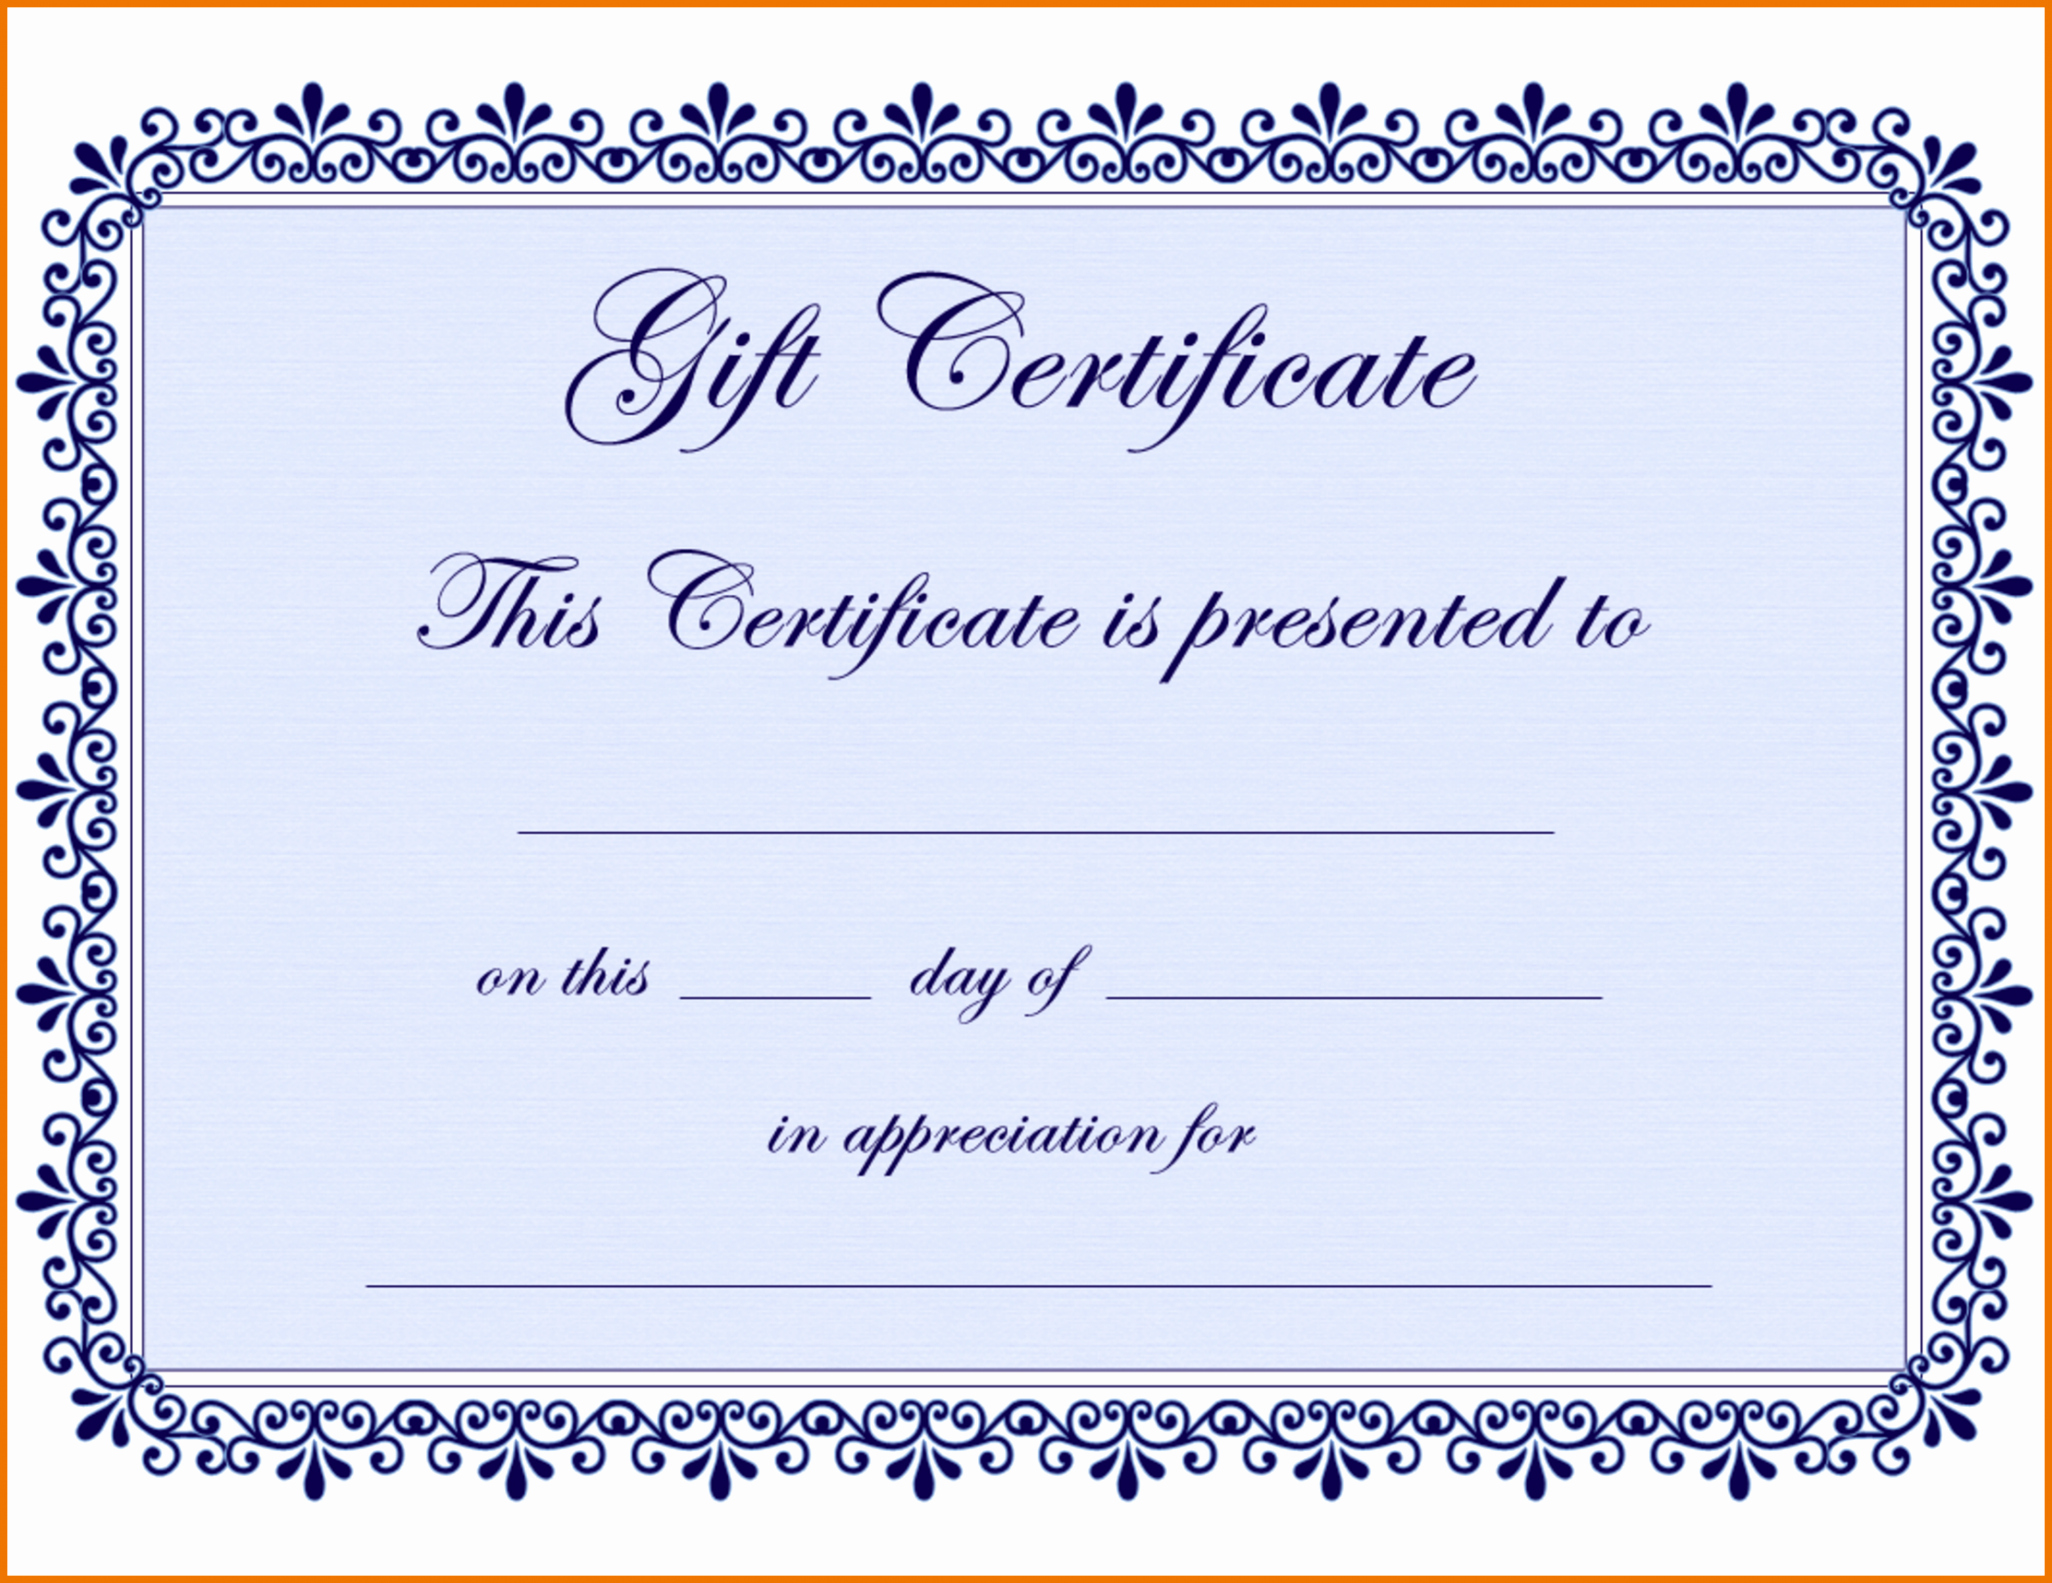 Gift Certificate Template Word Free Awesome Free Gift Certificate Template Pages Sample